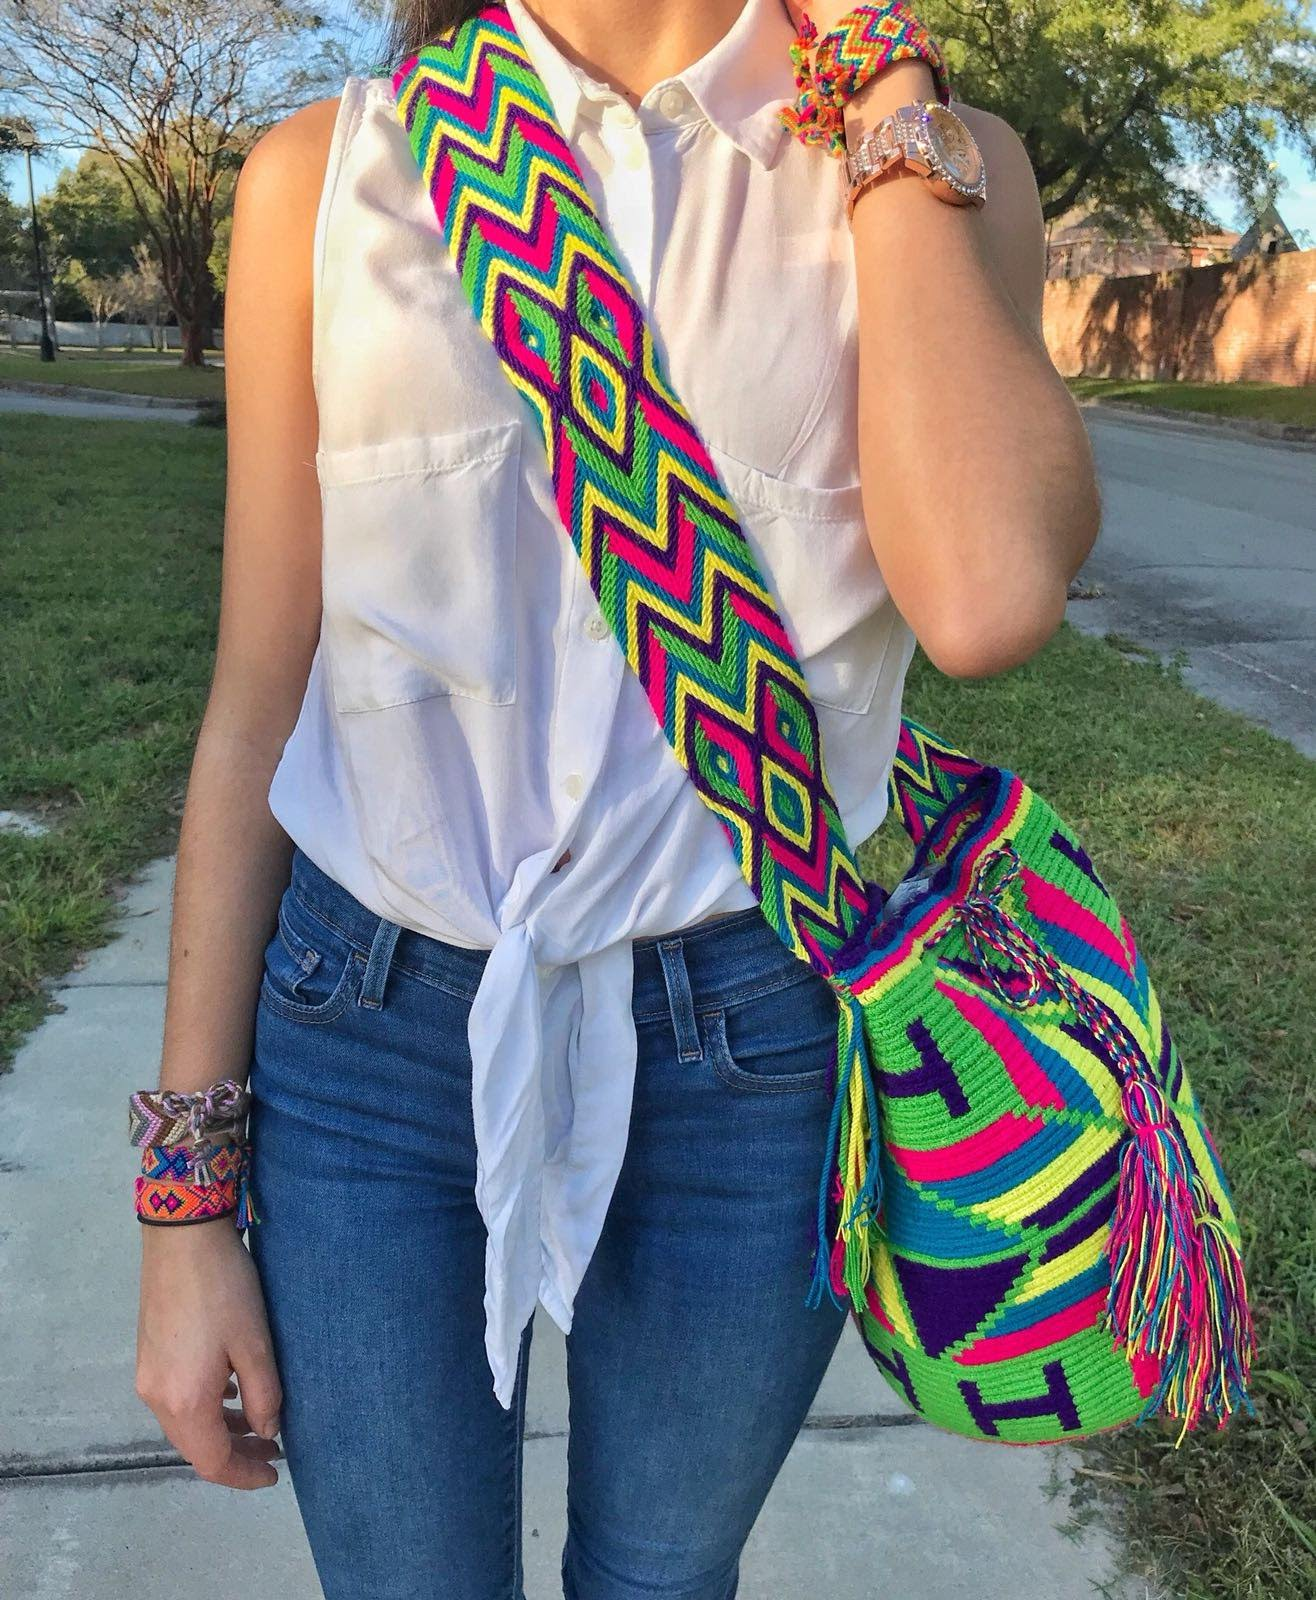 Young Woman Shows the Green Macaw Wayuu Mochila Bag with a beautiful arrays of the following vibrant colors: Light-Green, Cerulean (Dark-Aquamarine), Bright-Rose, Purple, and Yellow.